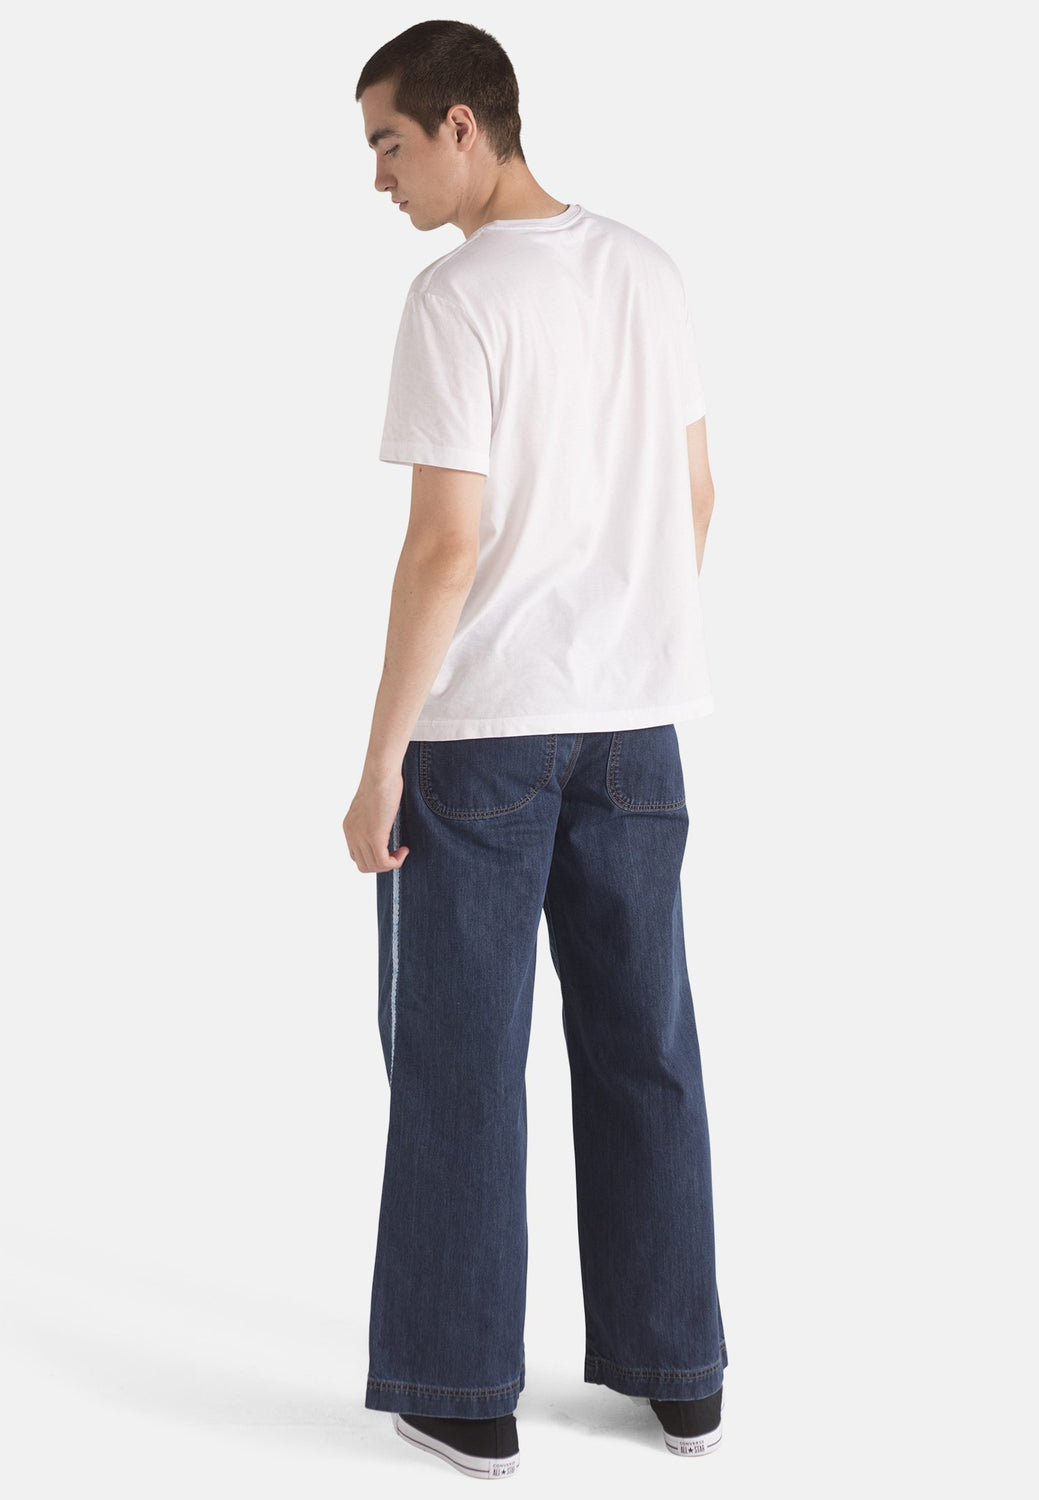 WIDE LEG // Organic Wide Leg Jeans in Dark Wash with Tape - Monkee Genes Organic Jeans Denim - Men's Wide Jeans Monkee Genes Official  Monkee Genes Official